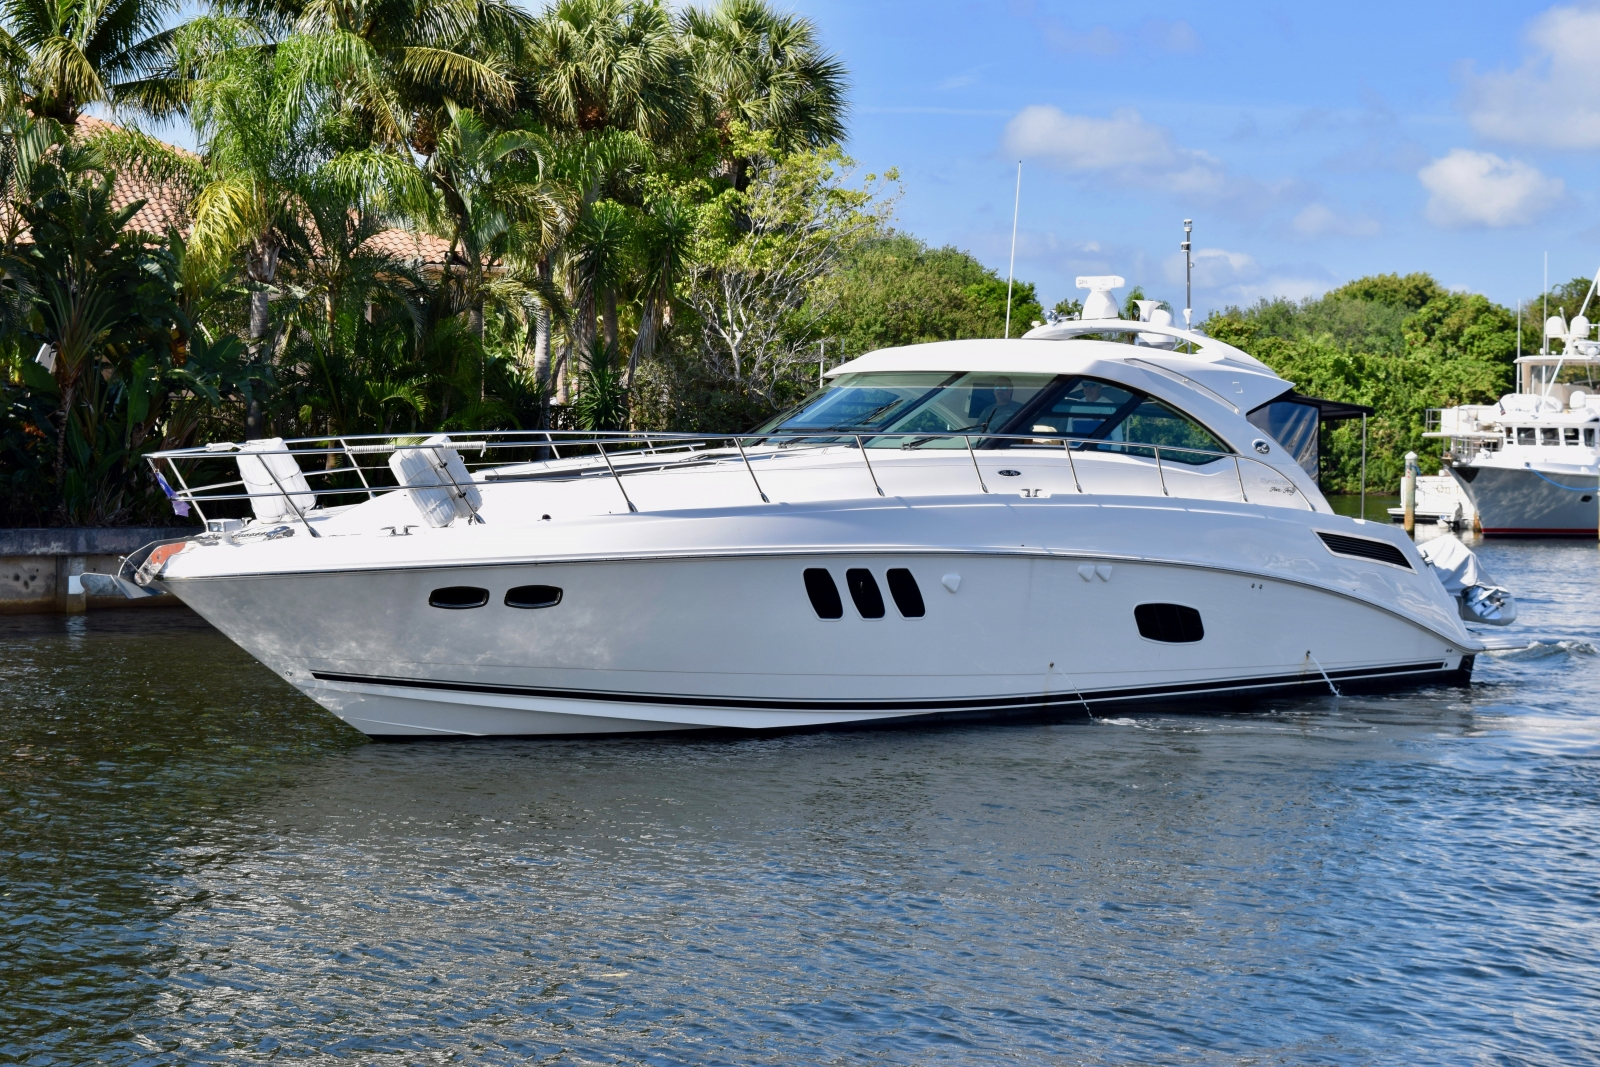 2012 Sea Ray 540 at the marina